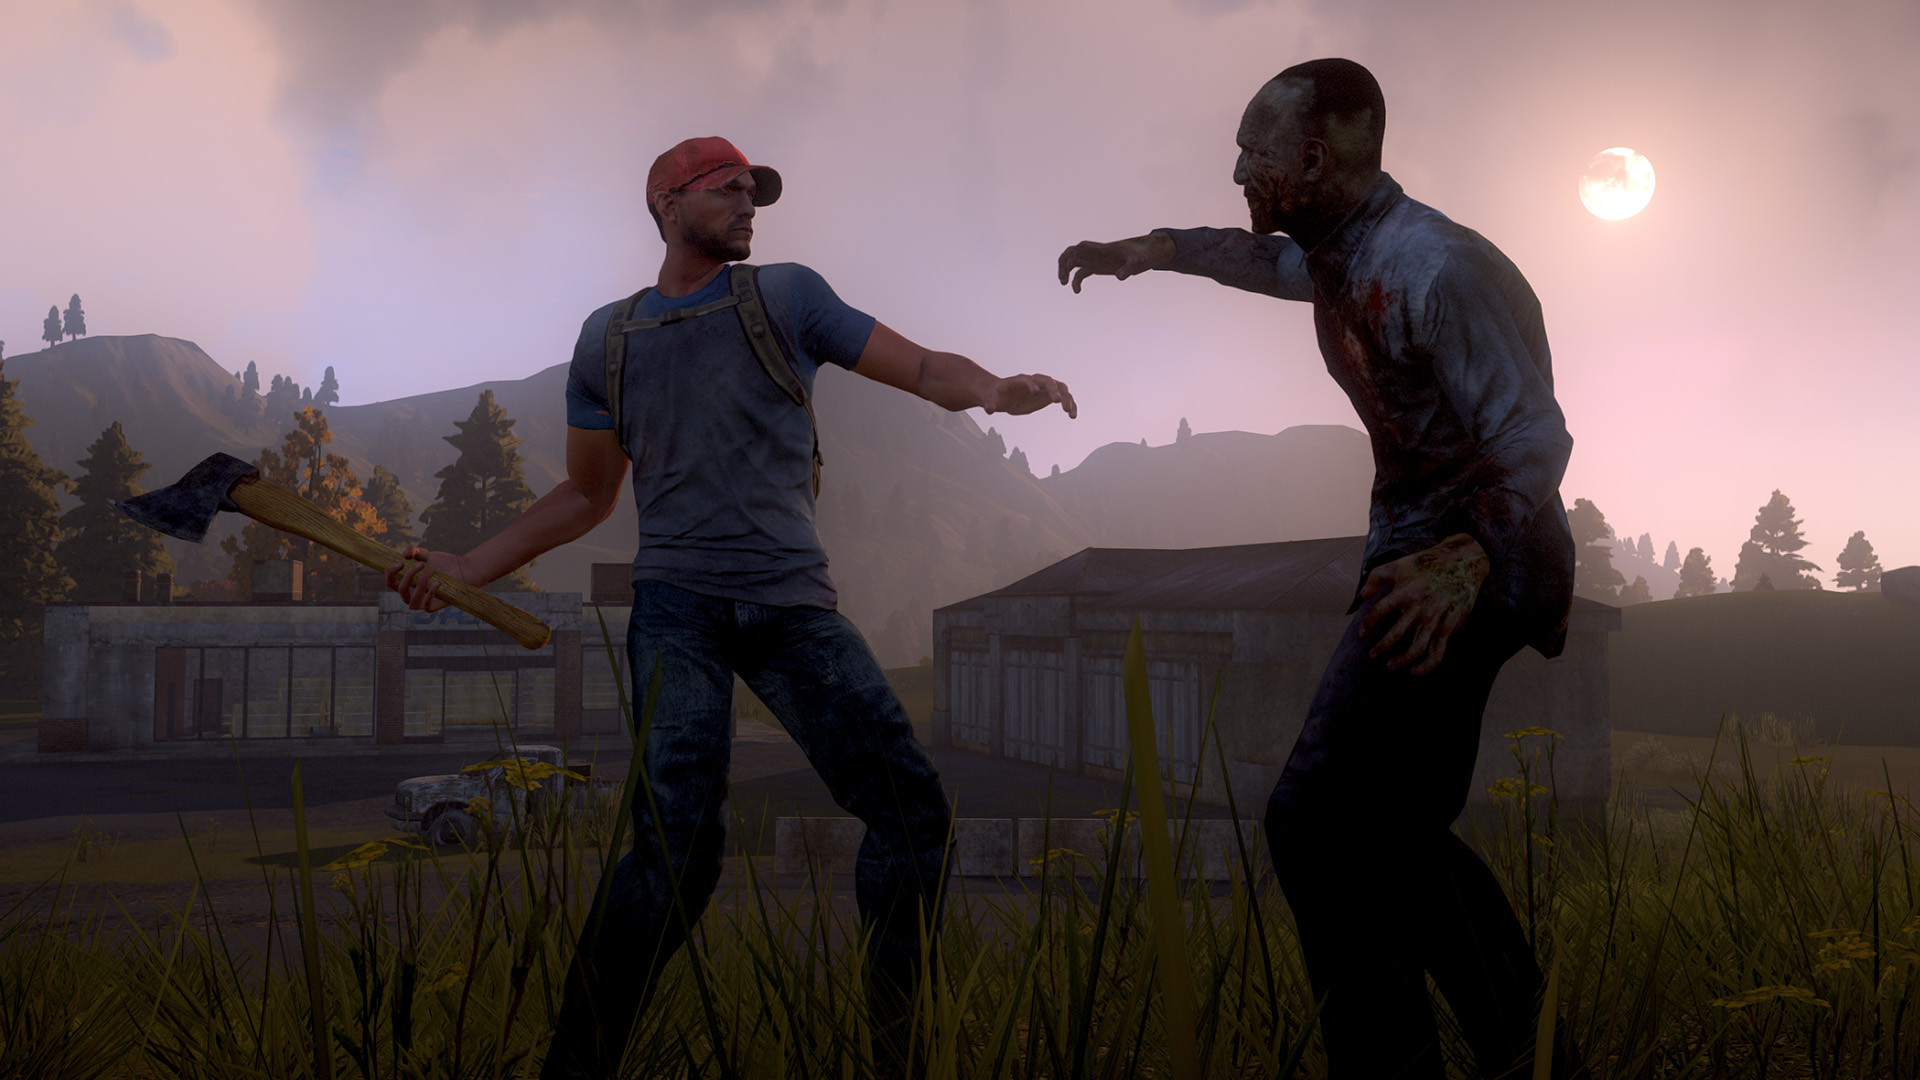 H1z1 King Of The Kill Wallpapers 93 Images